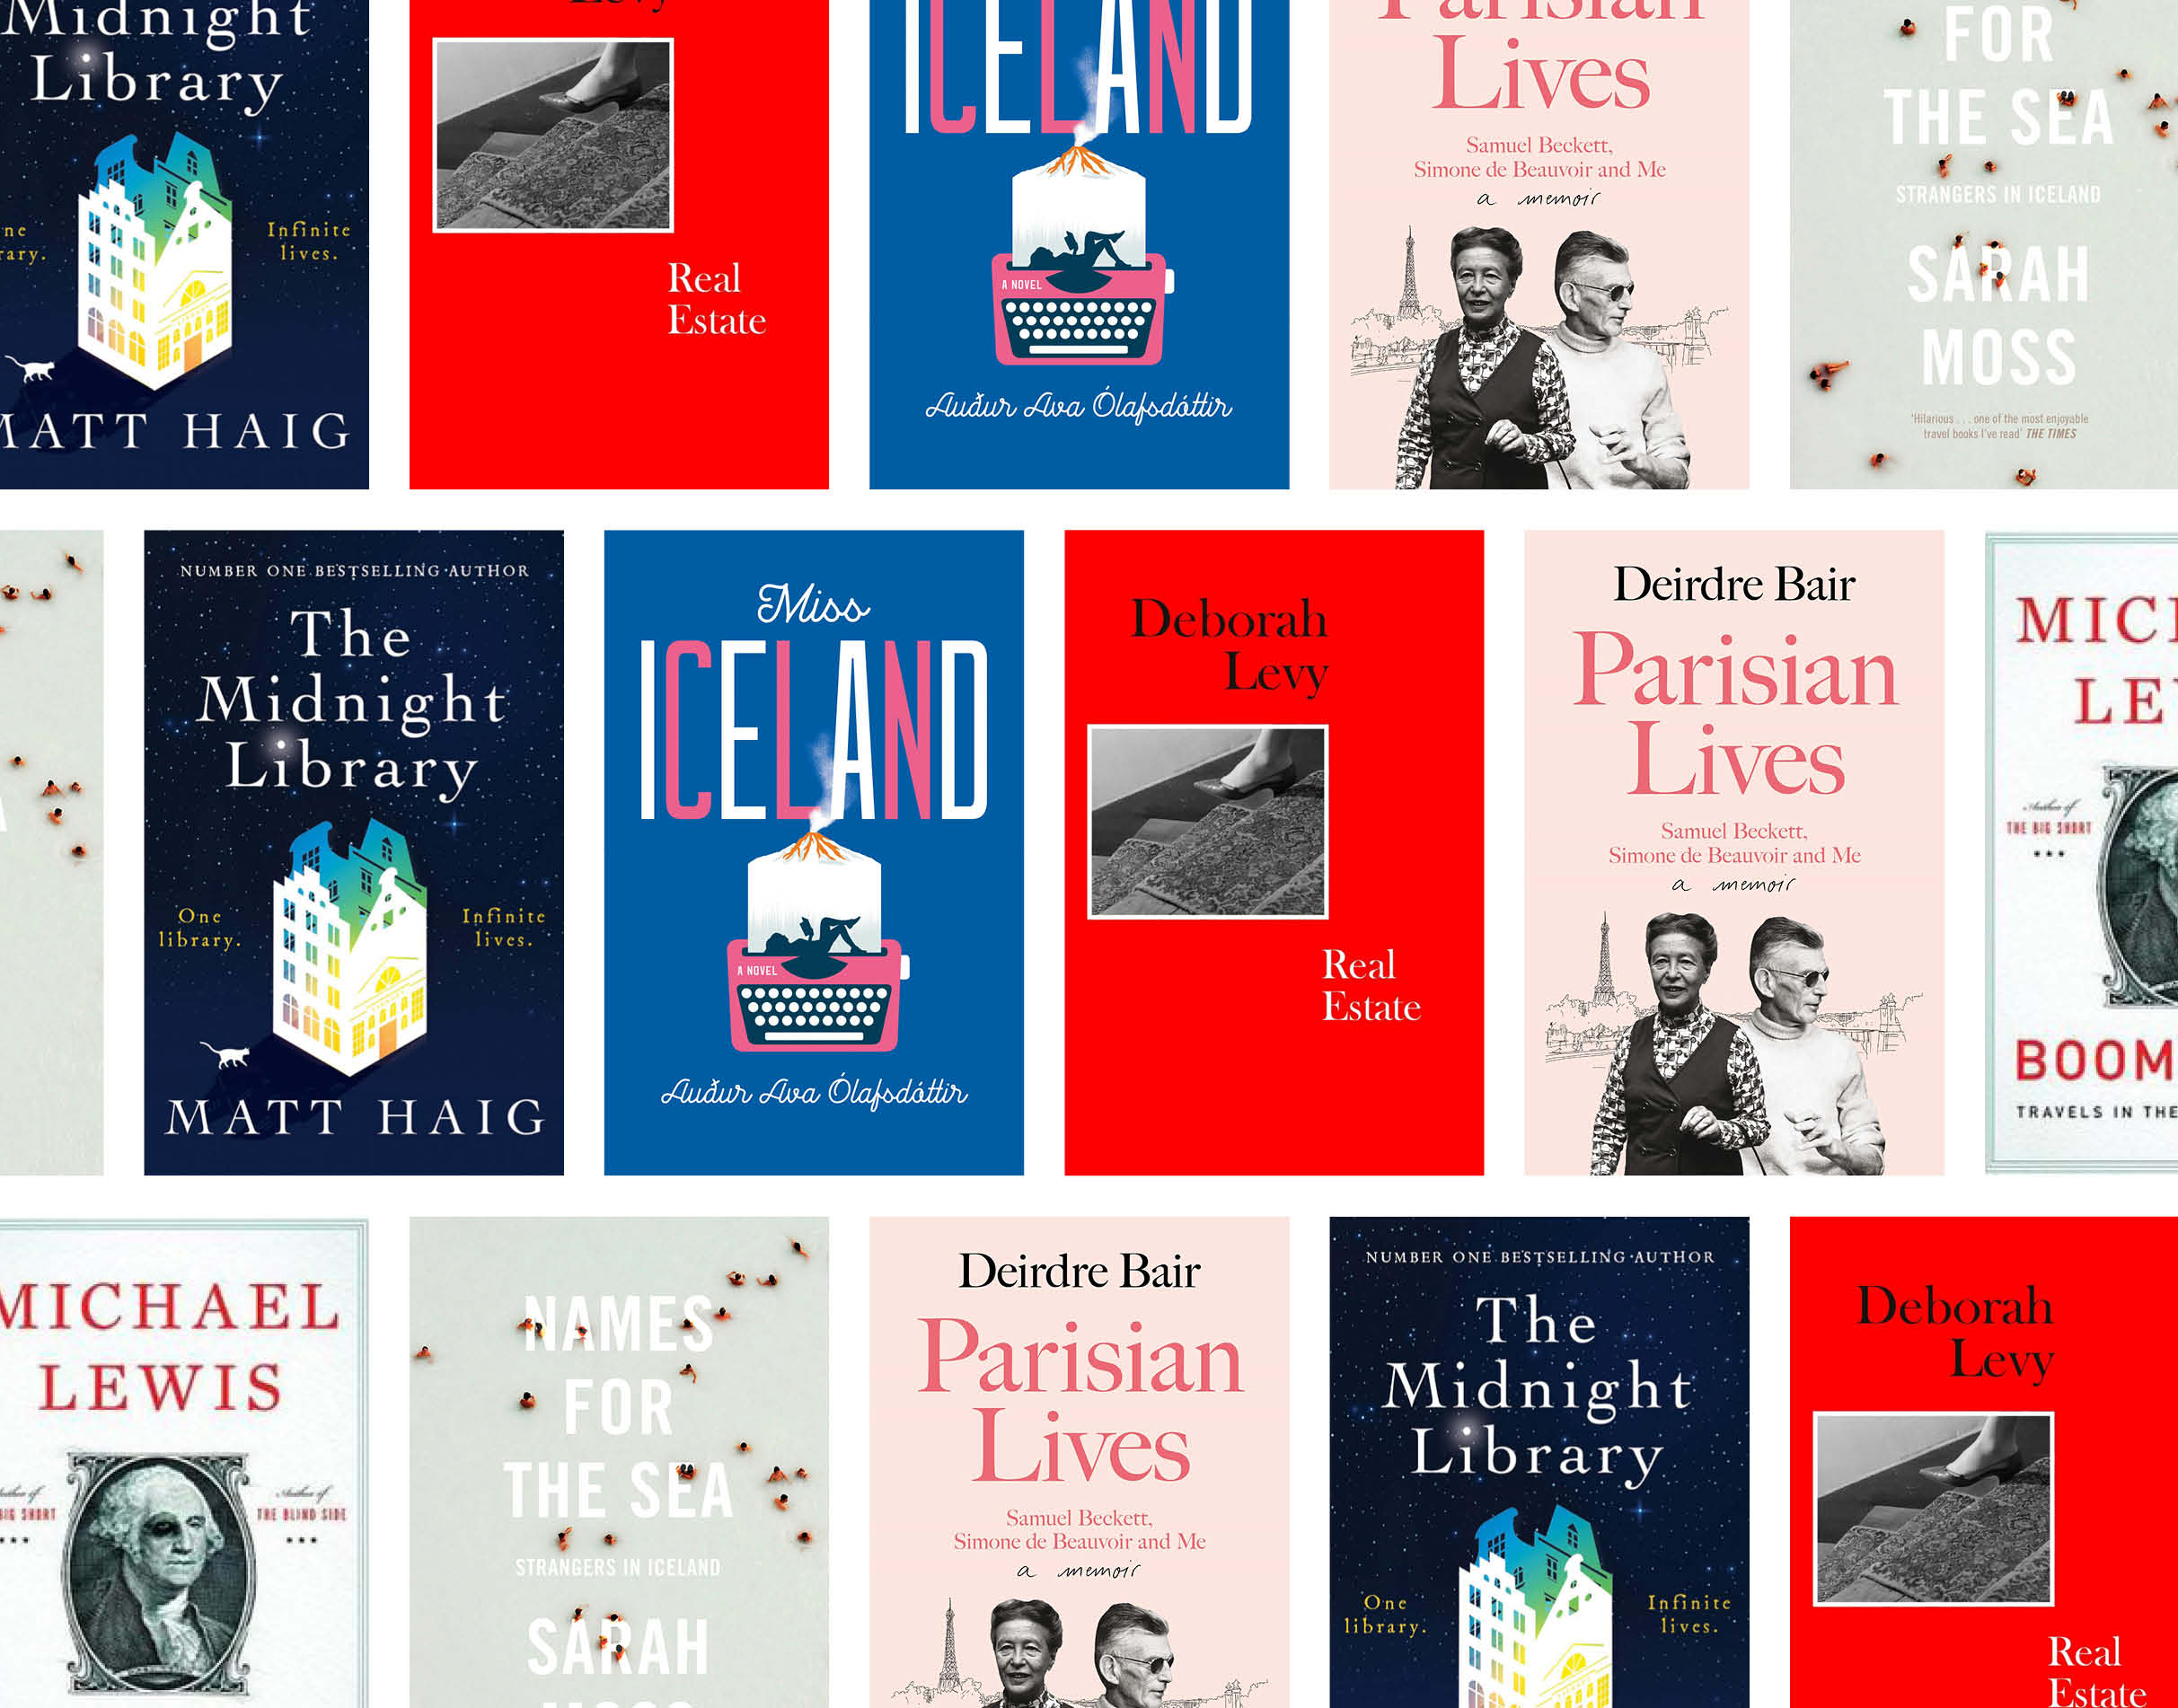 montage of book covers